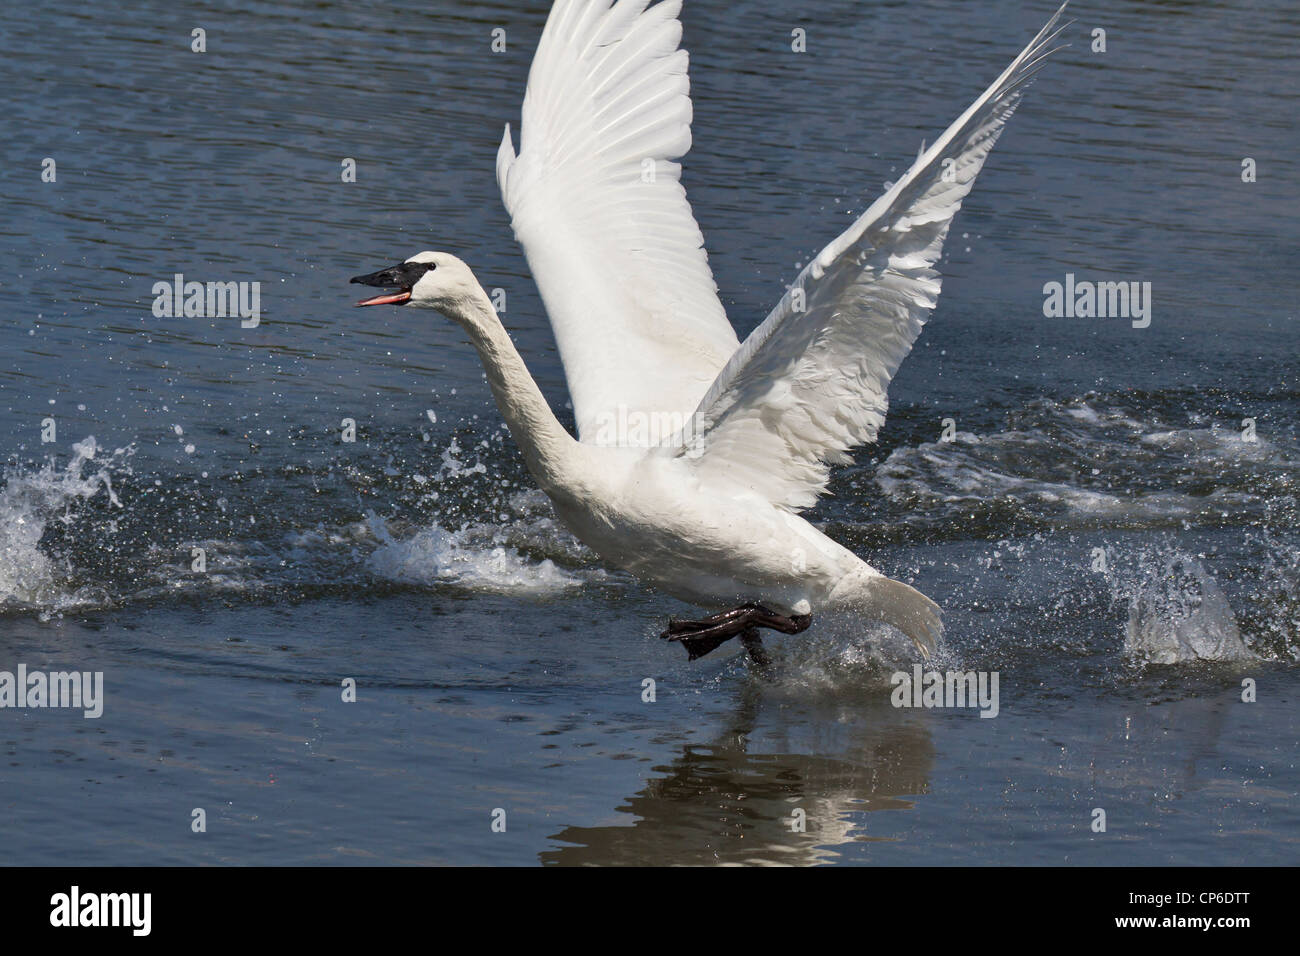 Trumpeter swan on takeoff run from lagoon-Victoria, British Columbia, Canada. - Stock Image